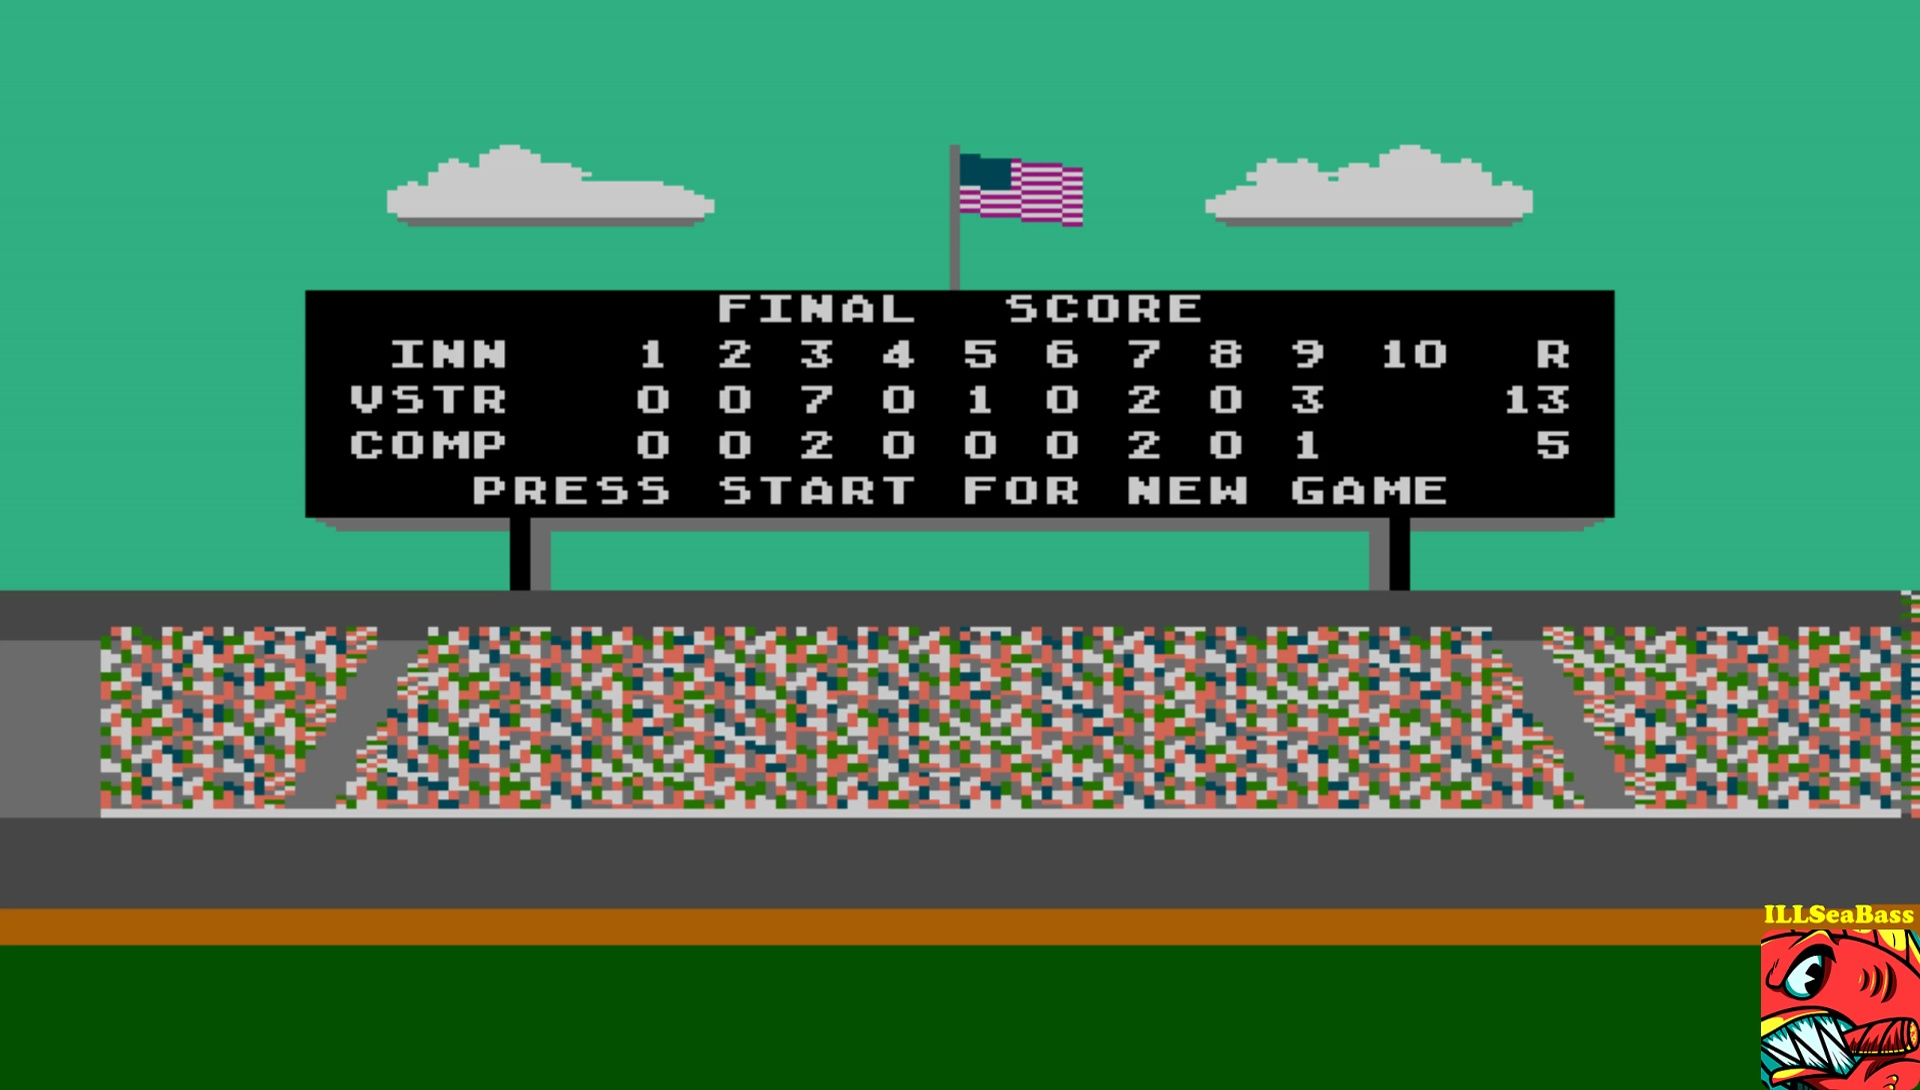 ILLSeaBass: Star League Baseball [Point Difference] (Atari 400/800/XL/XE Emulated) 8 points on 2017-07-11 23:27:01